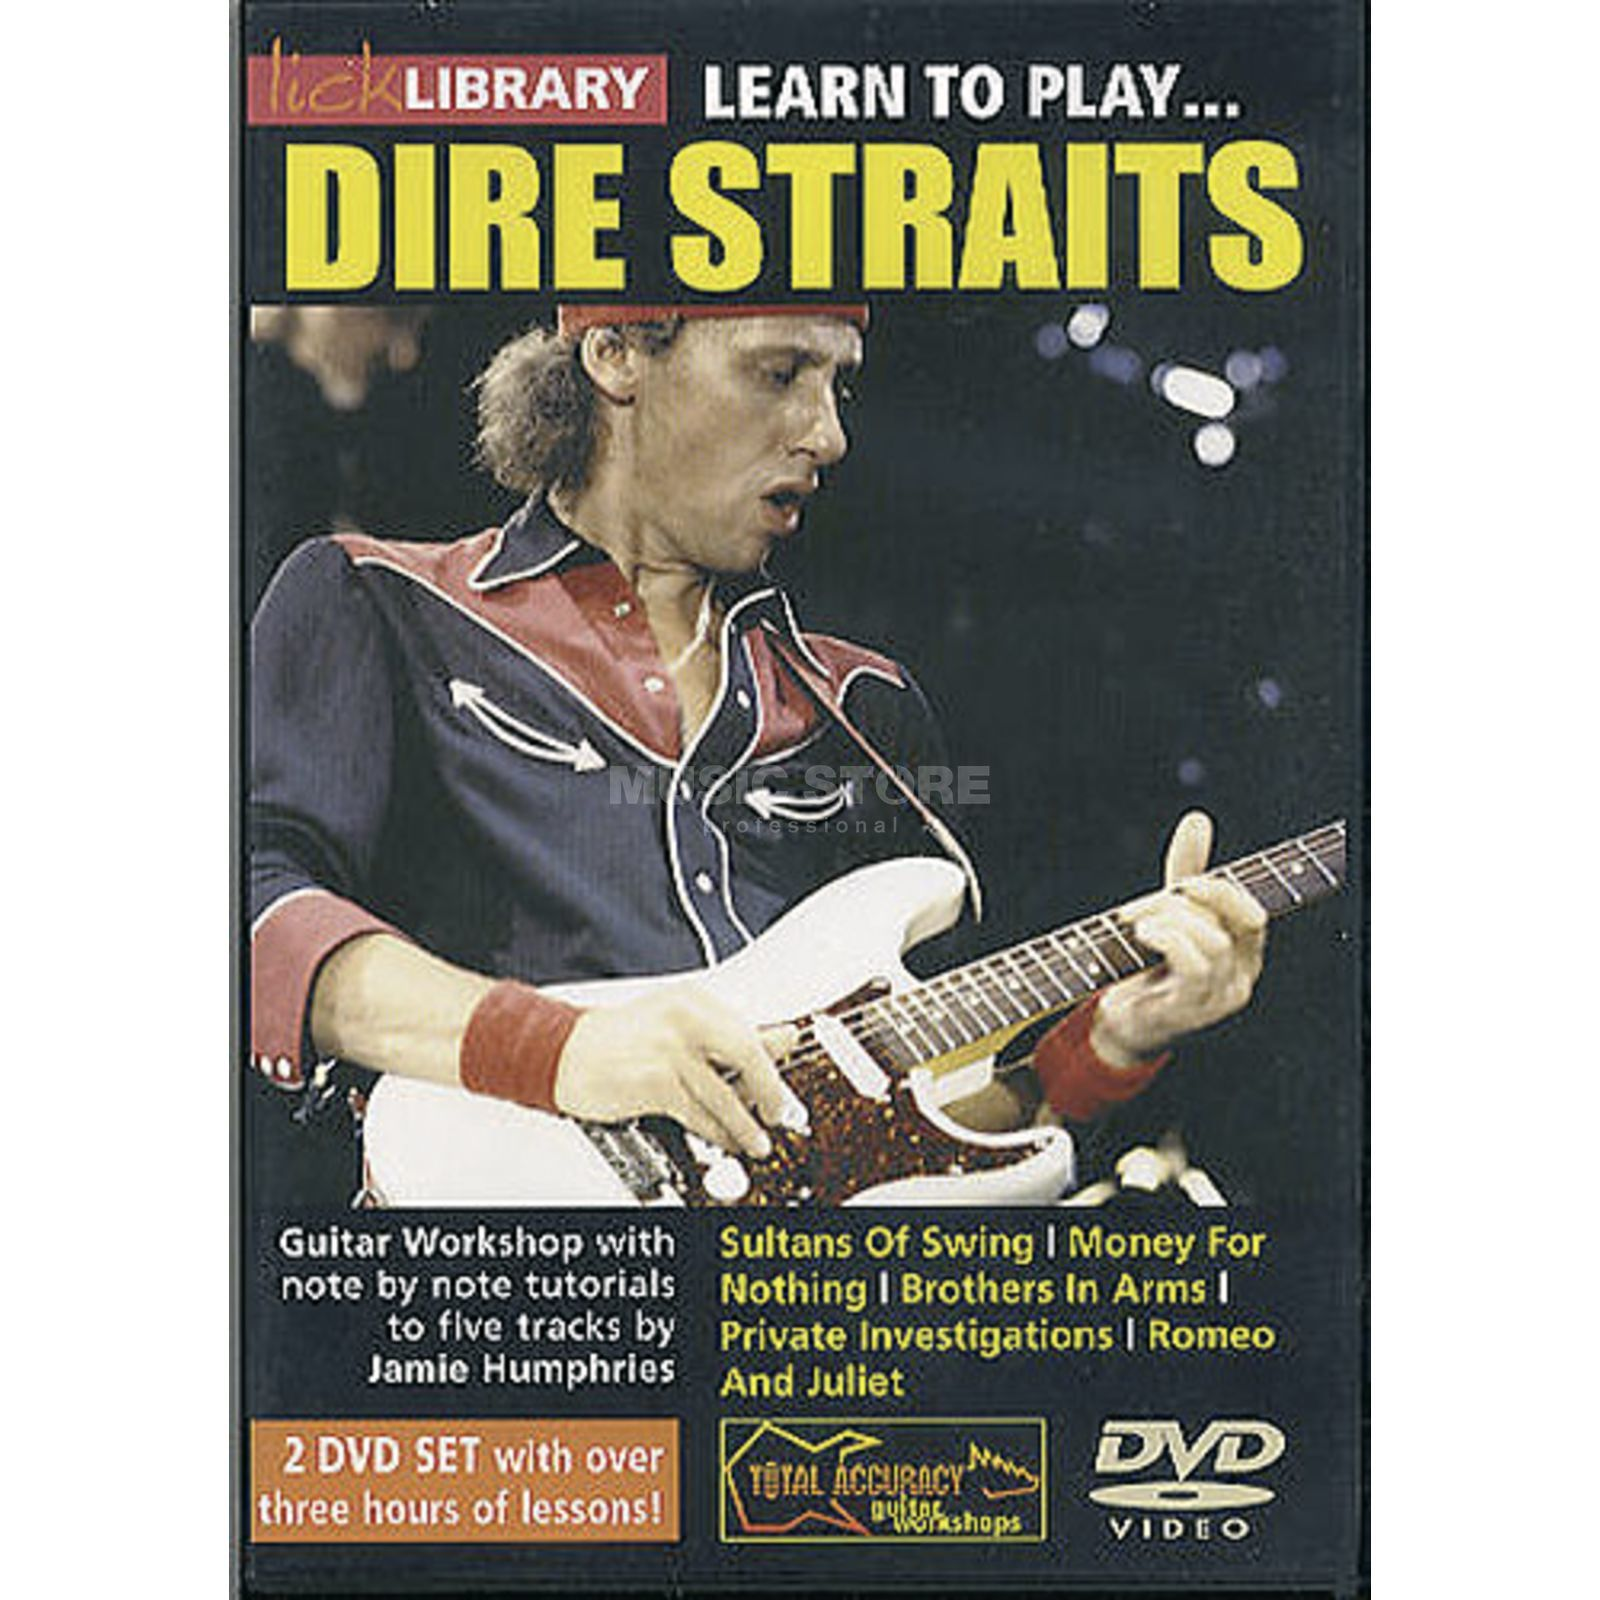 Roadrock International Lick Library: Learn To Play Dire Straits DVD Produktbild